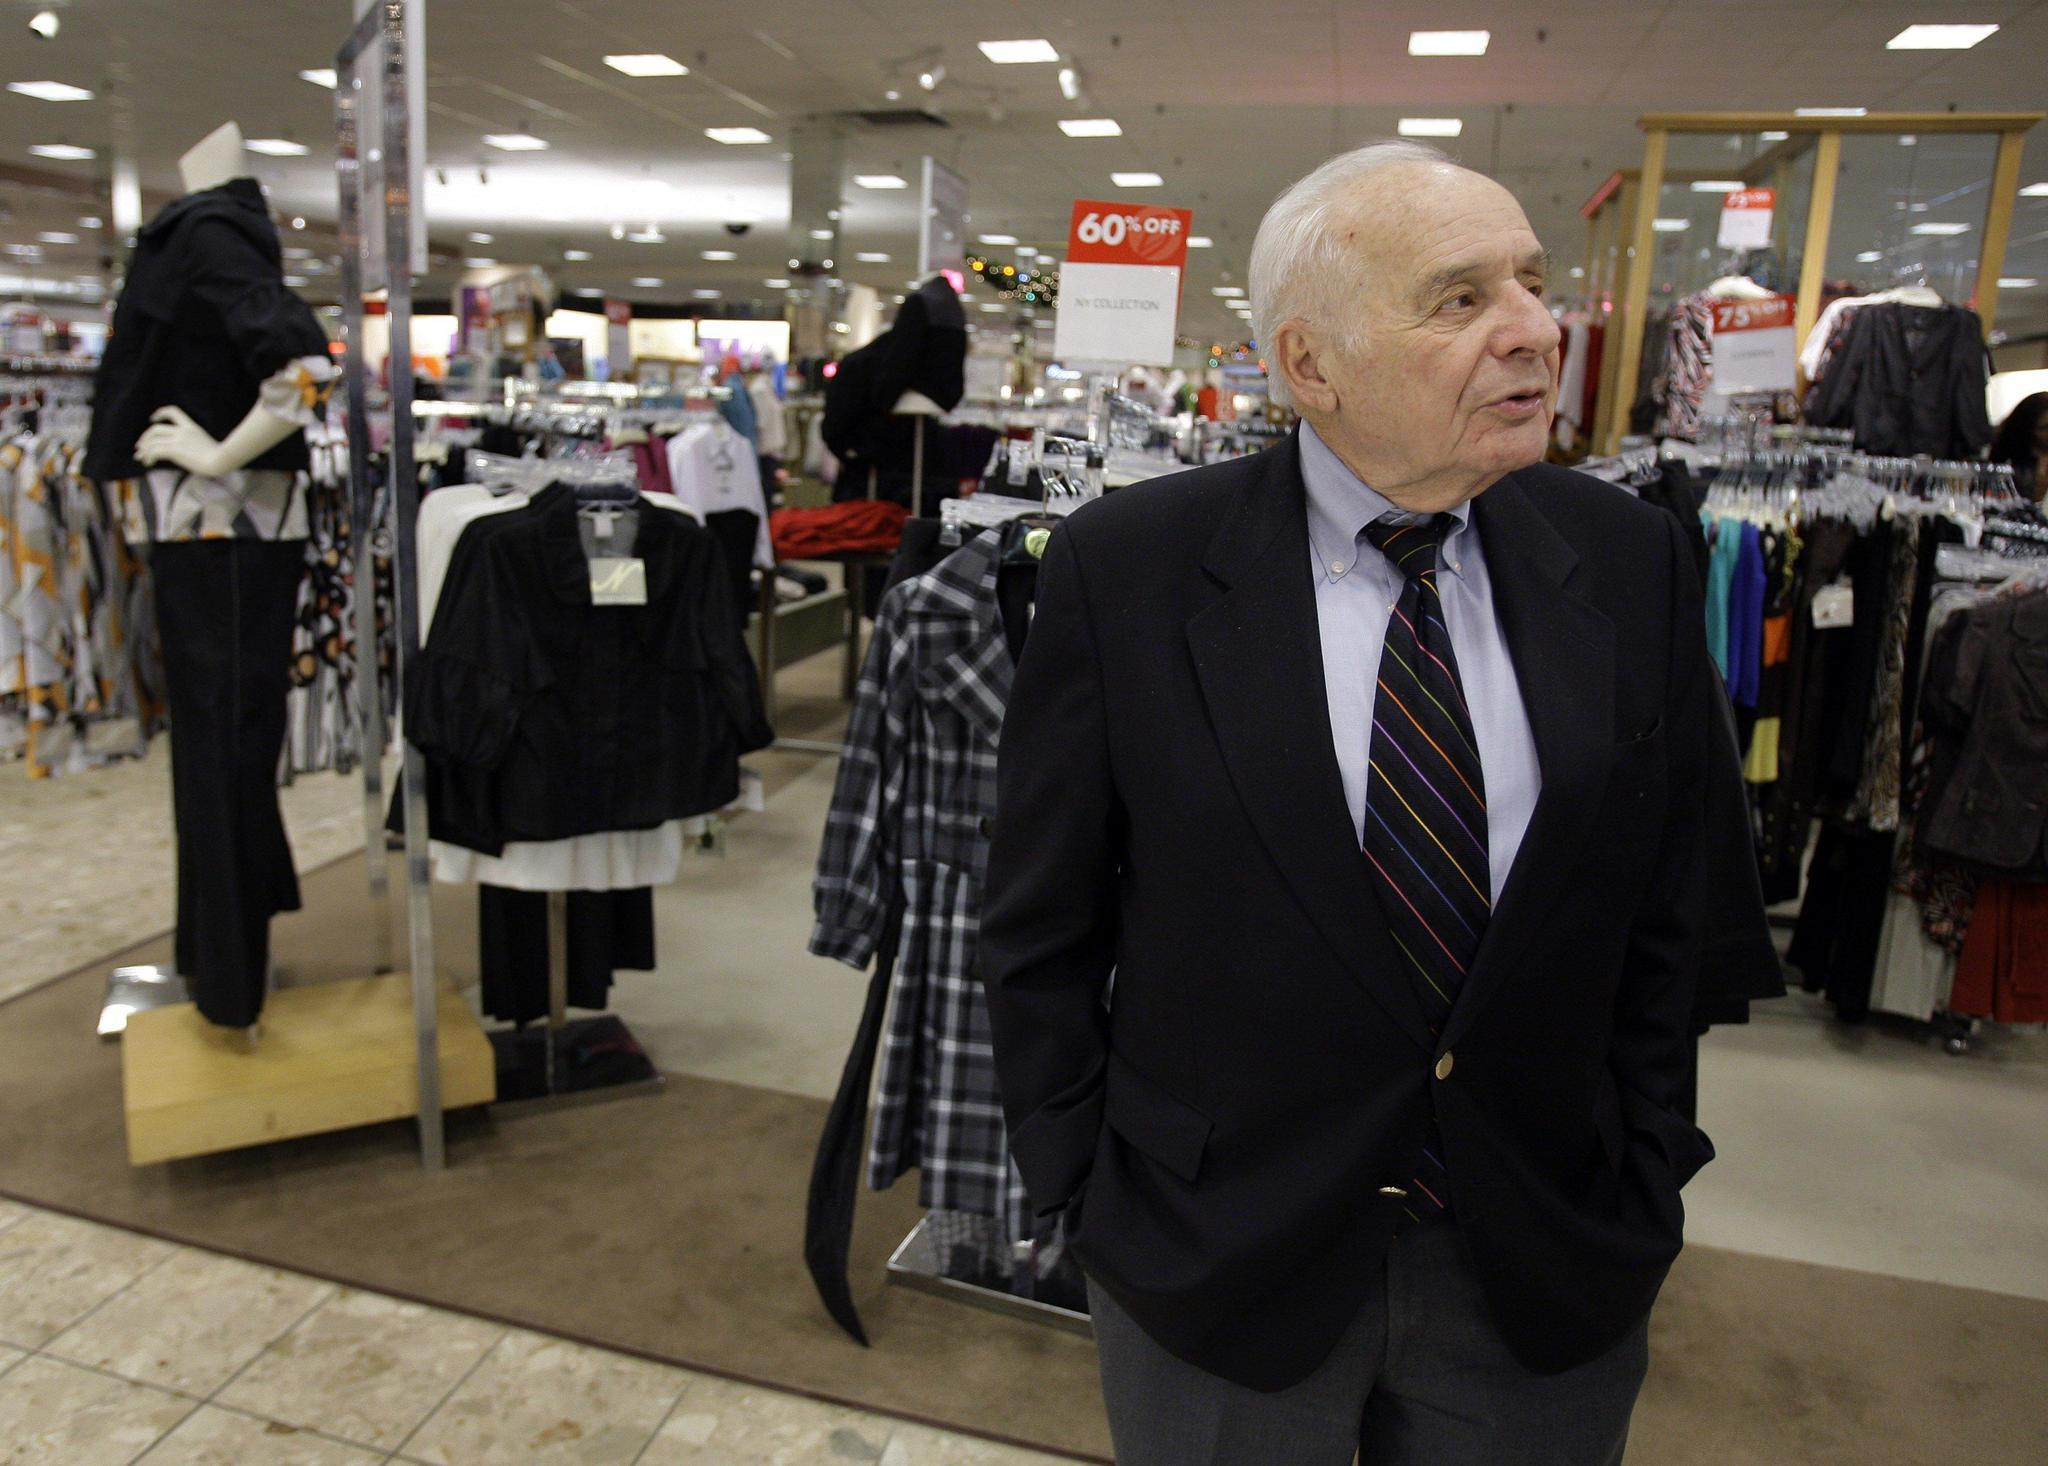 Boscov's Inc. is a family-owned department store with 47 locations in Pennsylvania, New York, New Jersey, Delaware, Maryland, Ohio and Connecticut, as well as a future location in Rhode particase.ml stores are located in Pennsylvania. The company chairman is Jim Boscov, who took over after his uncle Albert Boscov died from pancreatic cancer on February 10,